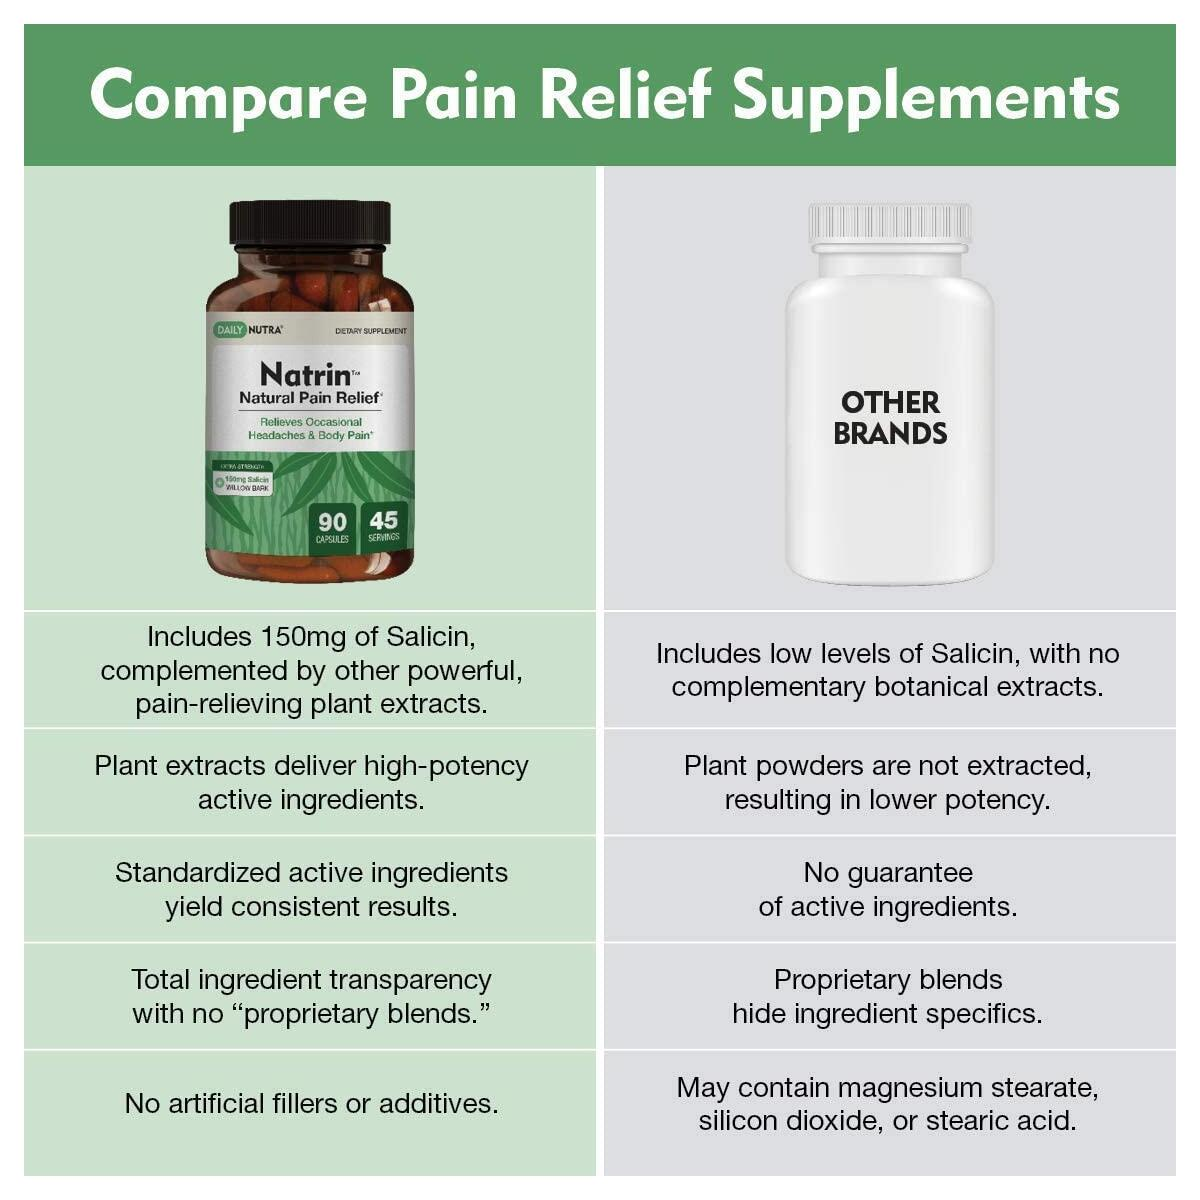 Natrin Natural Pain Relief by DailyNutra - Relieves Headaches and Pain in The Back, Neck, Knees, and Joints | Featuring High Strength White Willow Bark with 150mg of Salicin